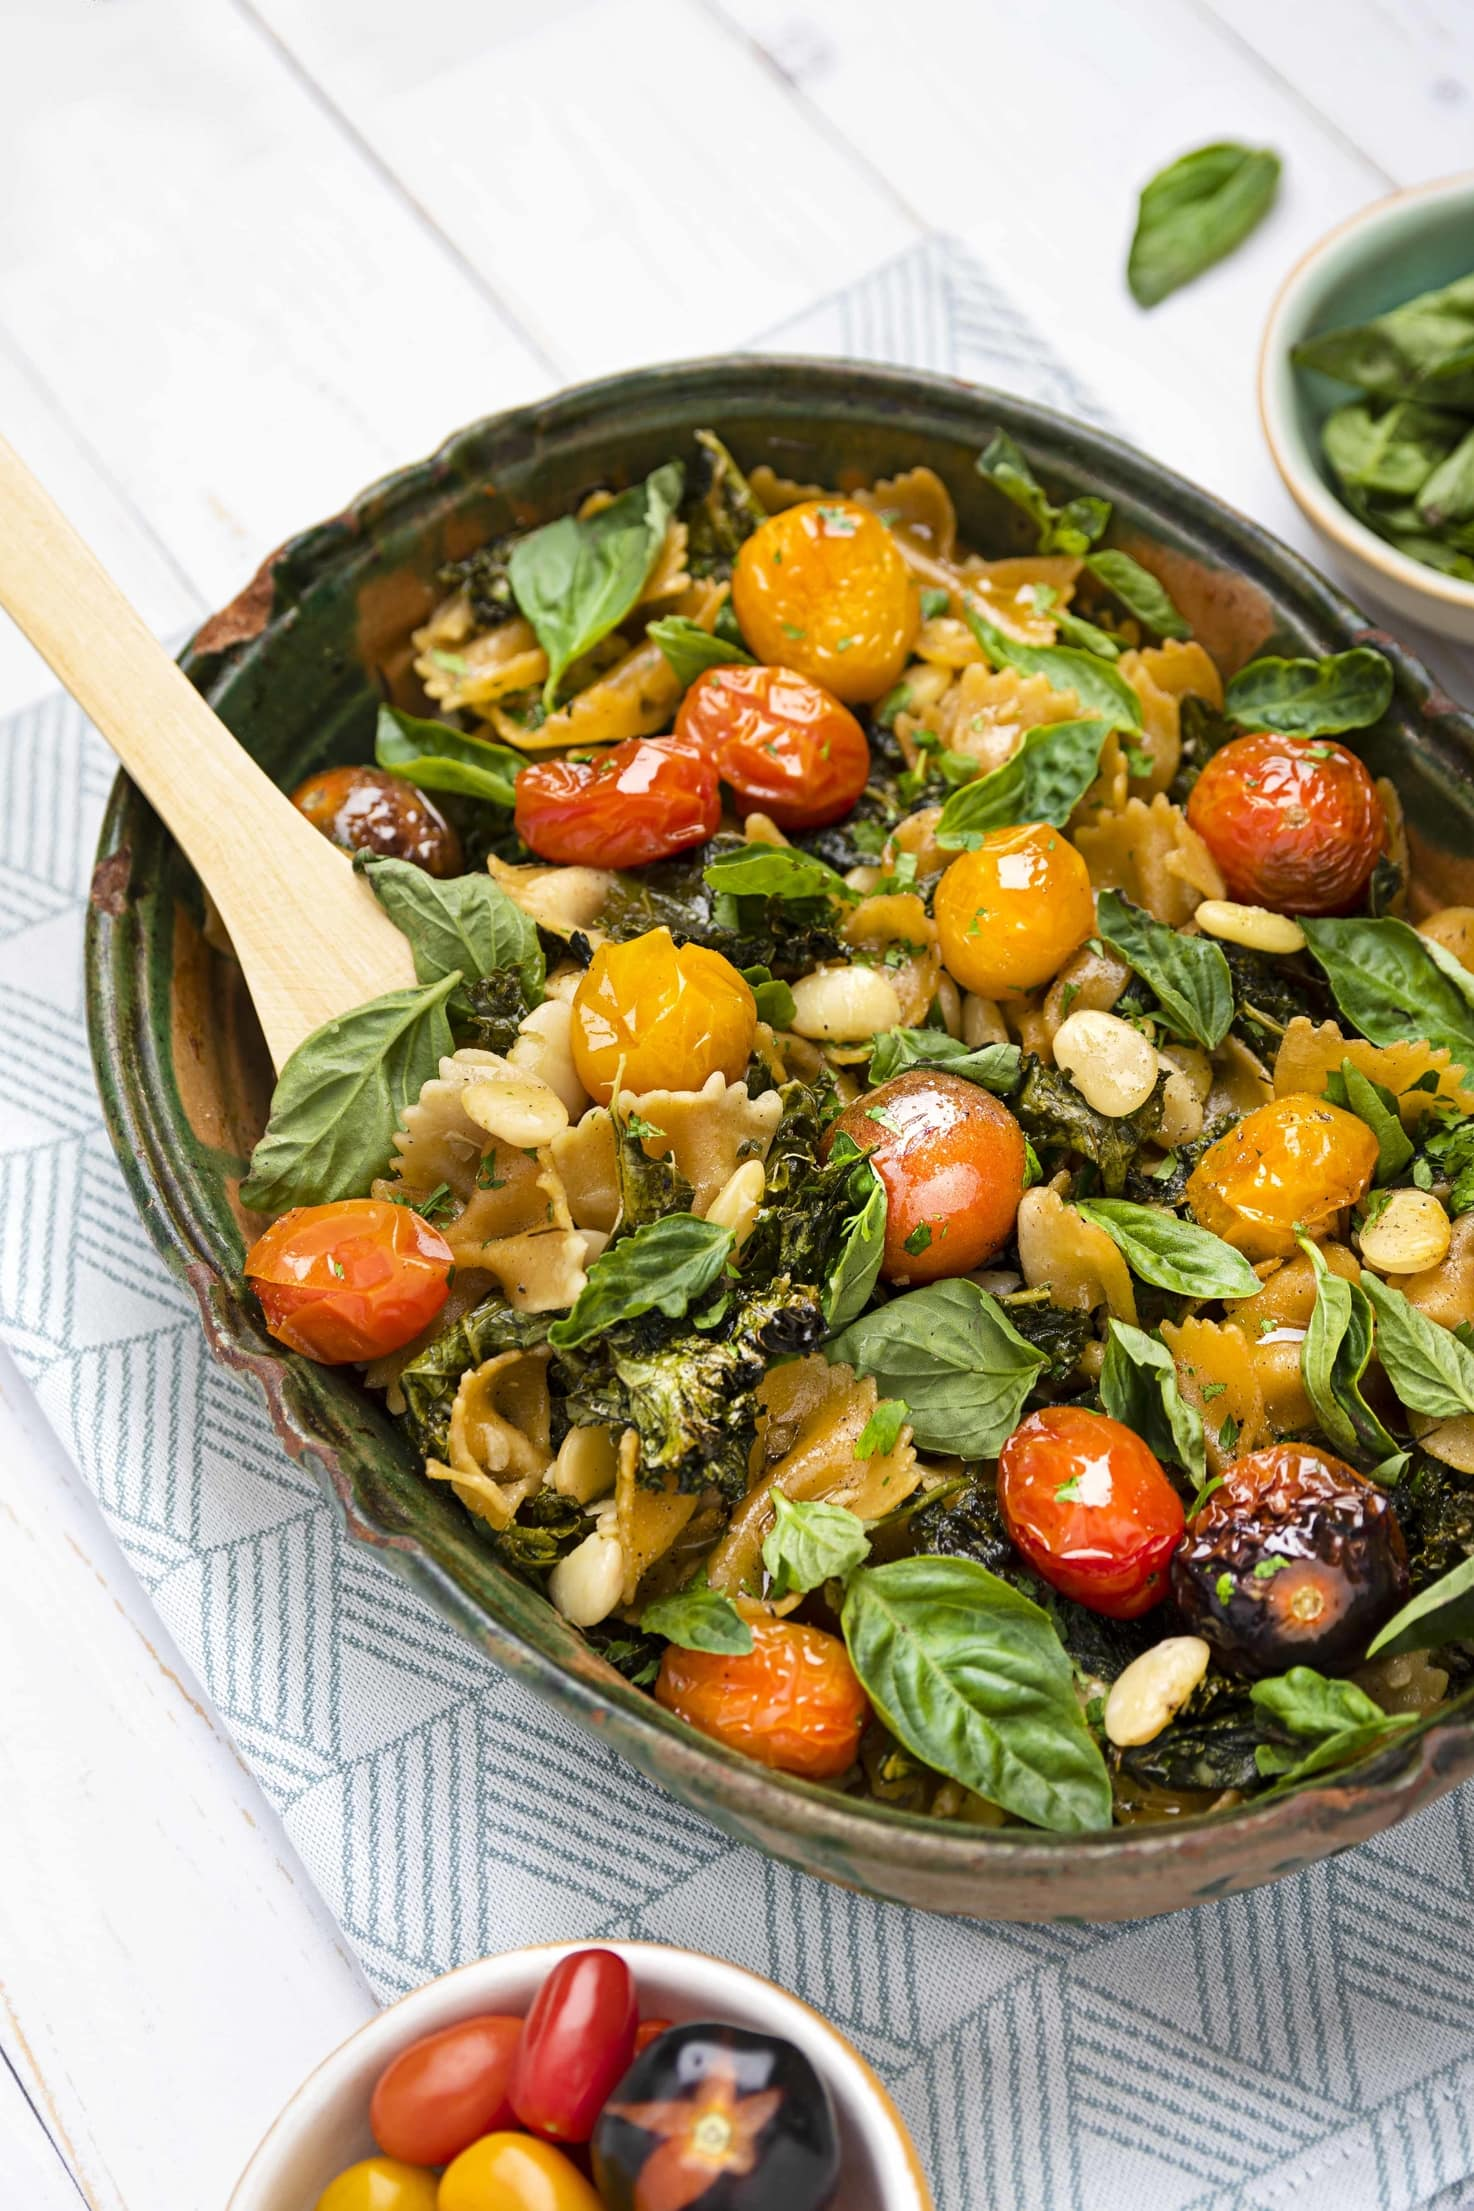 The casserole is in its dish on a table, with a wooden spoon in it lifting up some of the bean, tomato, kale and pasta mix | Hurry The Food Up